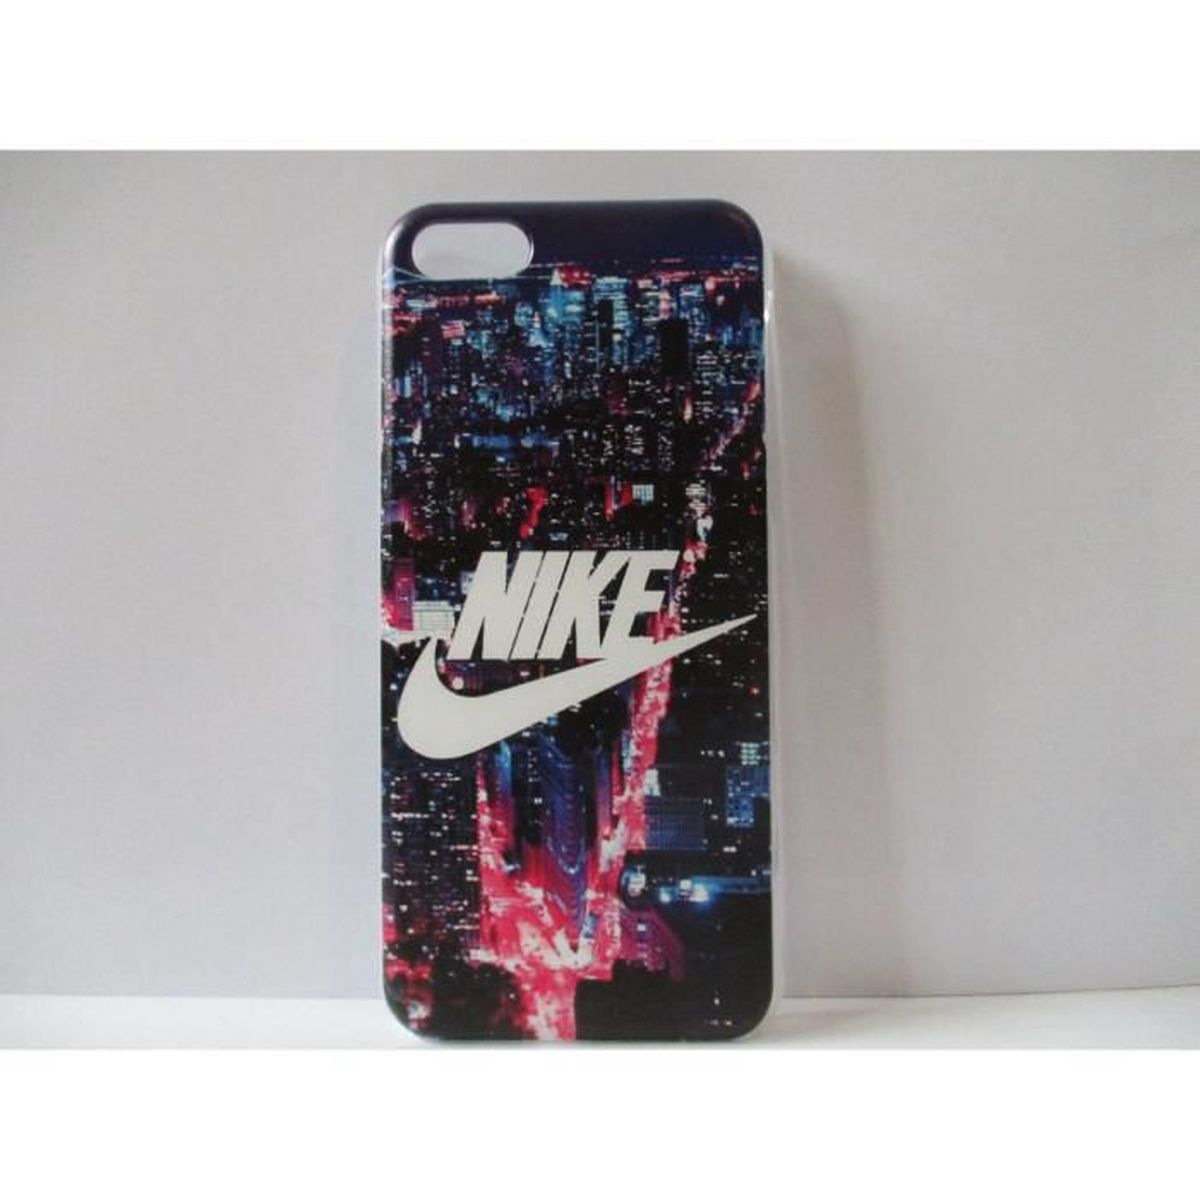 coque nike iphone 5c neuf motif n achat coque bumper. Black Bedroom Furniture Sets. Home Design Ideas